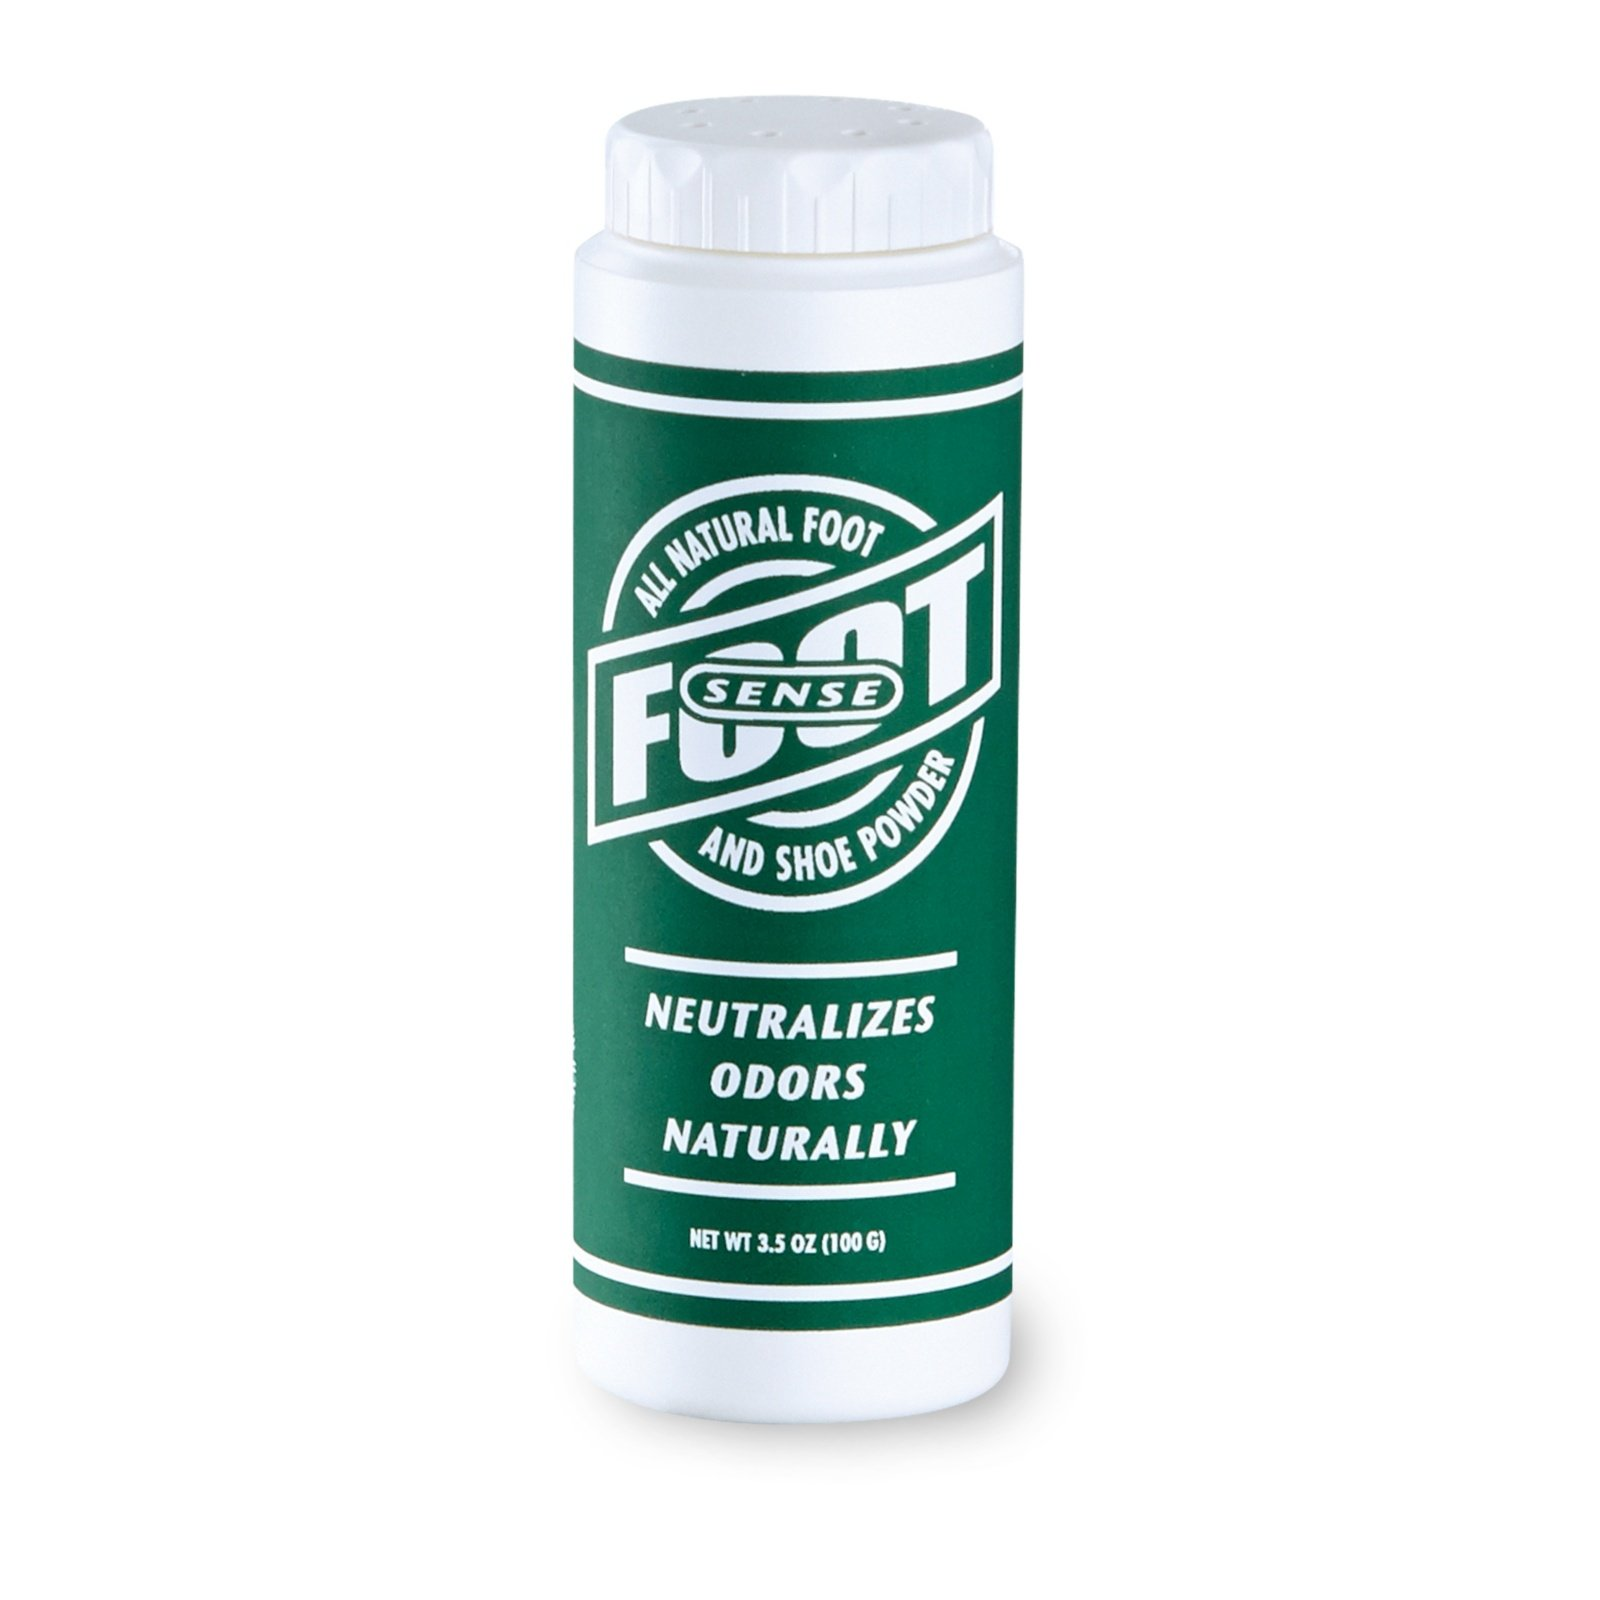 FOOT SENSE All Natural Smelly Foot & Shoe Powder - 3.5 Oz/100 Grams - Foot Odor Eliminator lasts up to 6 months. Safely kills bacteria. Natural formula for smelly shoes and stinky feet. Safe & natural. Protects disinfects and deodorizes.